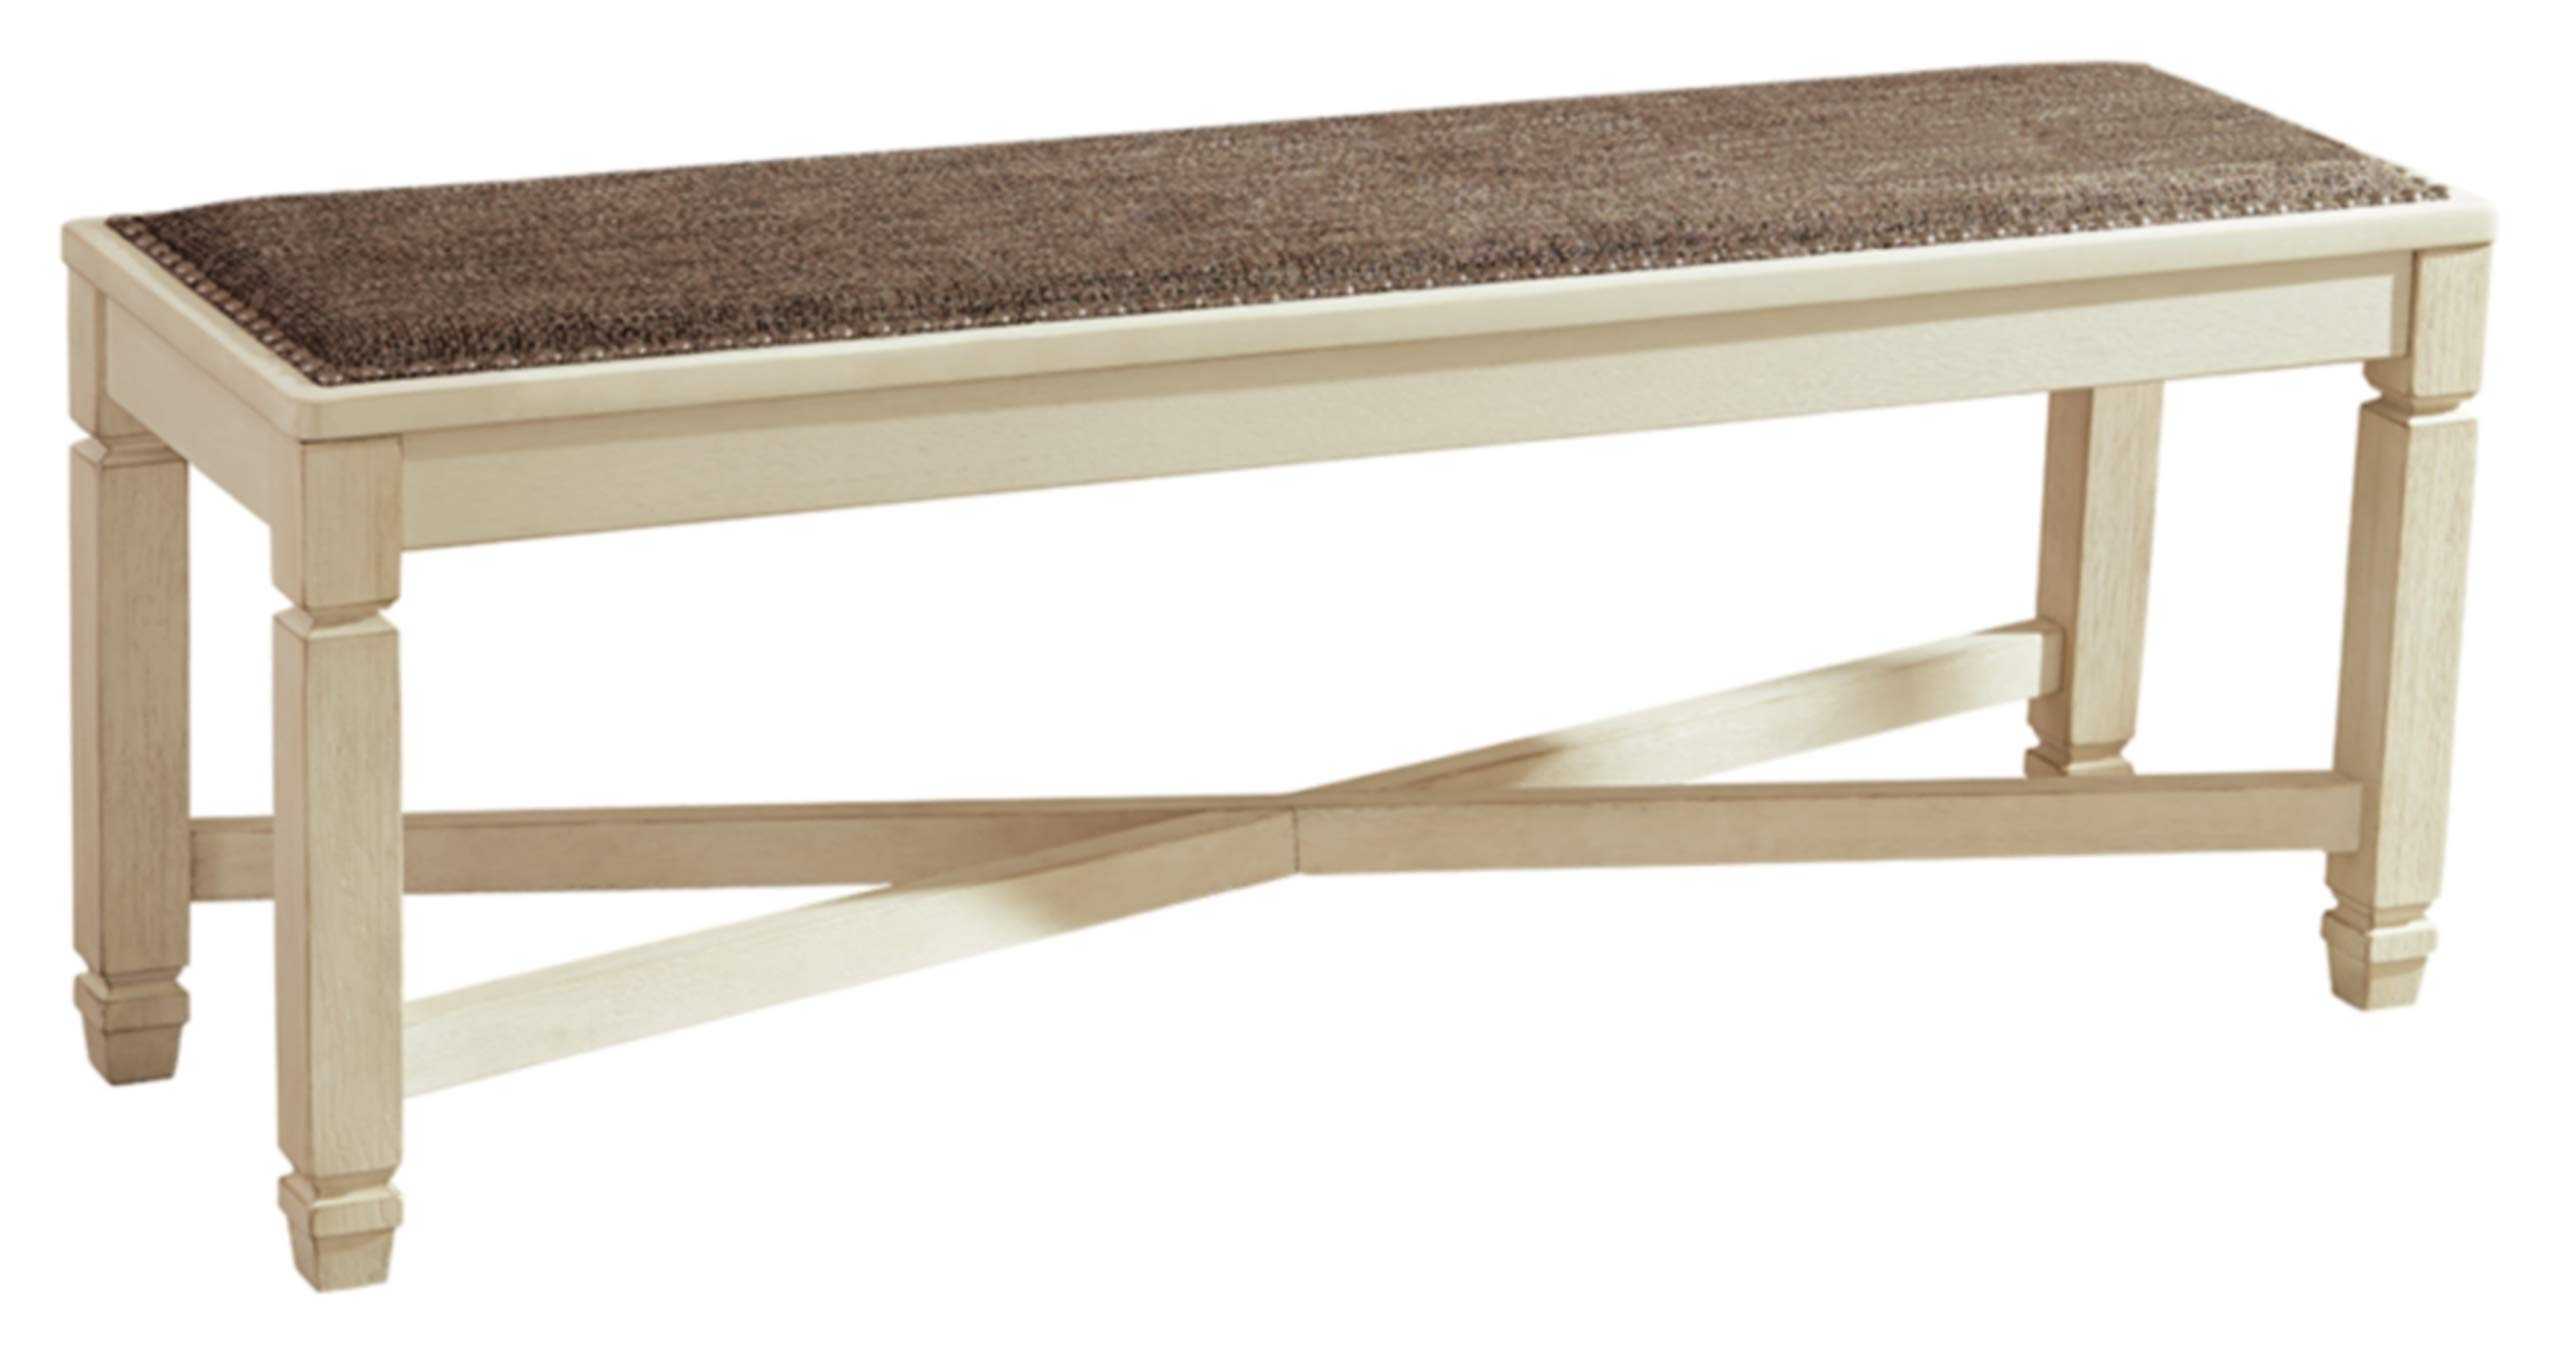 Ashley Furniture Signature Design - Bolanburg Upholstered Dining Room Bench - Two-tone - Textured Antique White Finish by Signature Design by Ashley